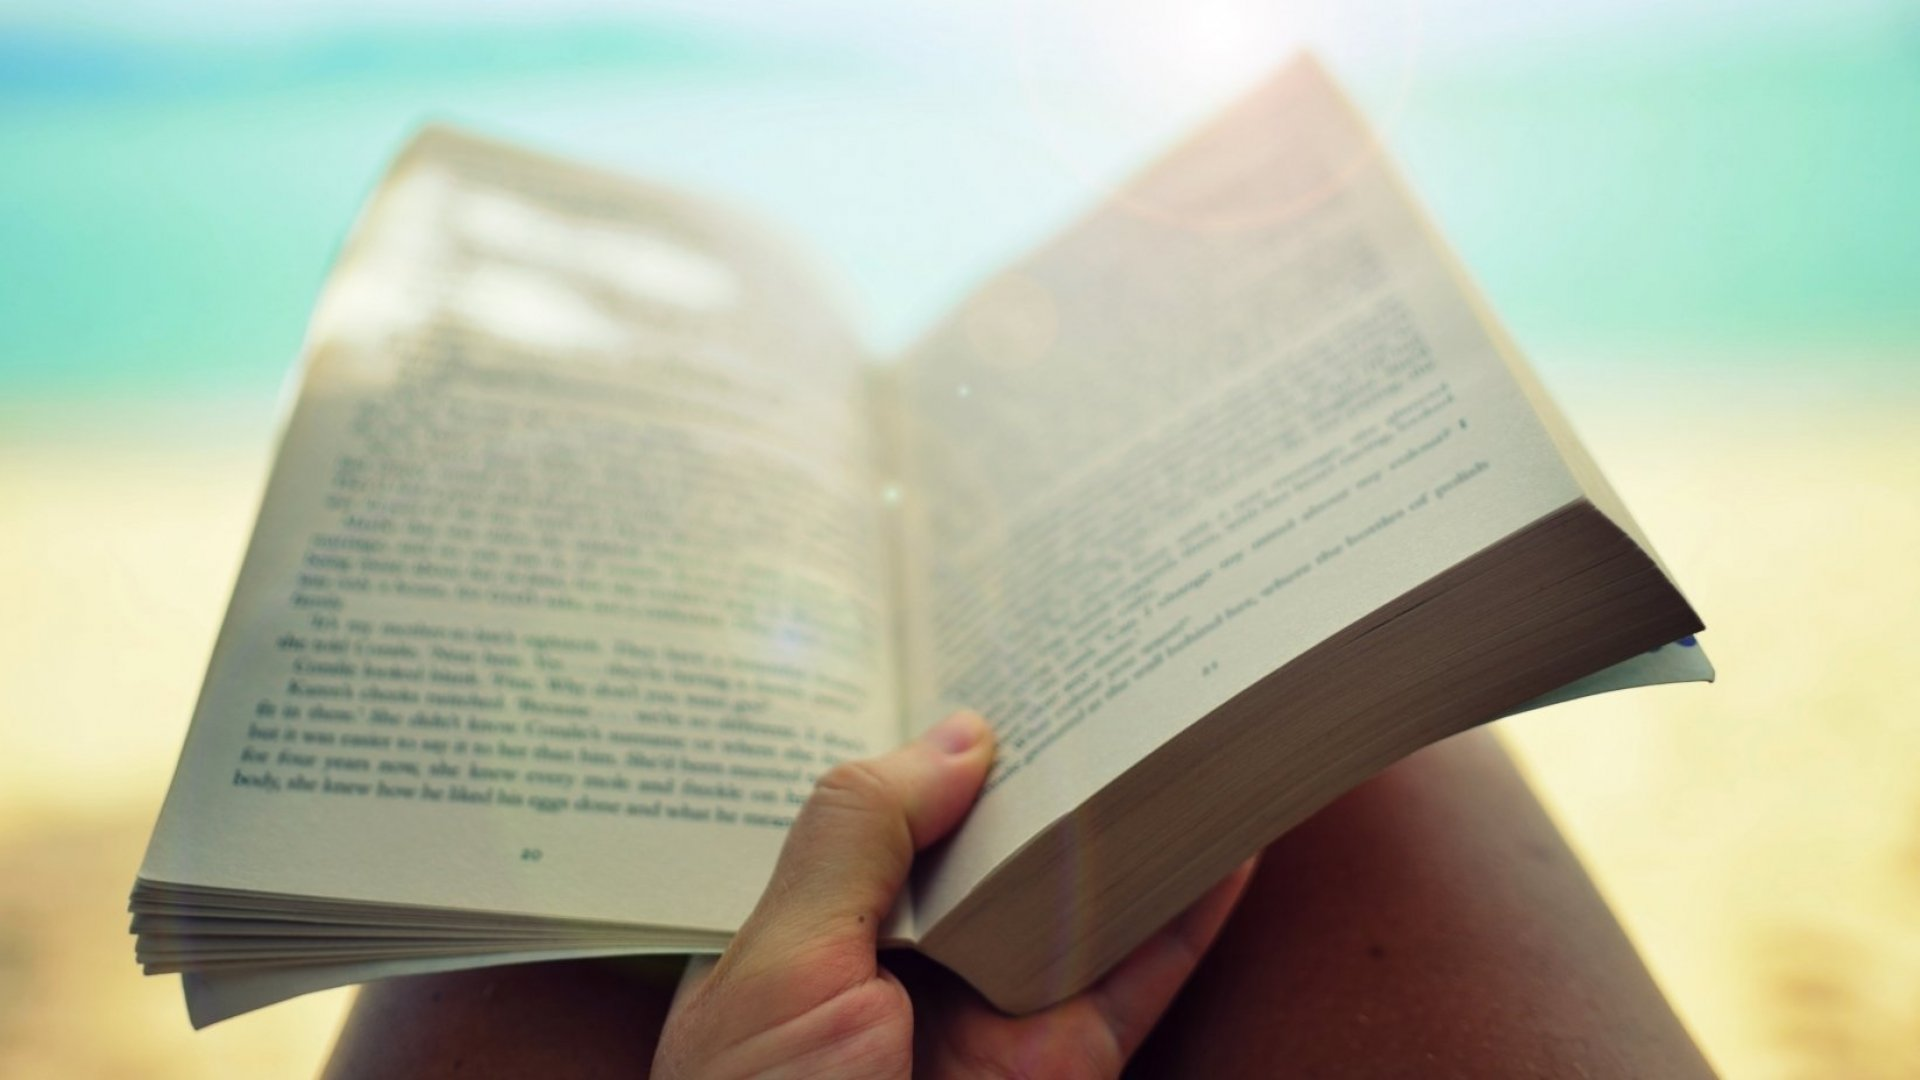 The 10 Best New Books to Read This August, According to Amazon